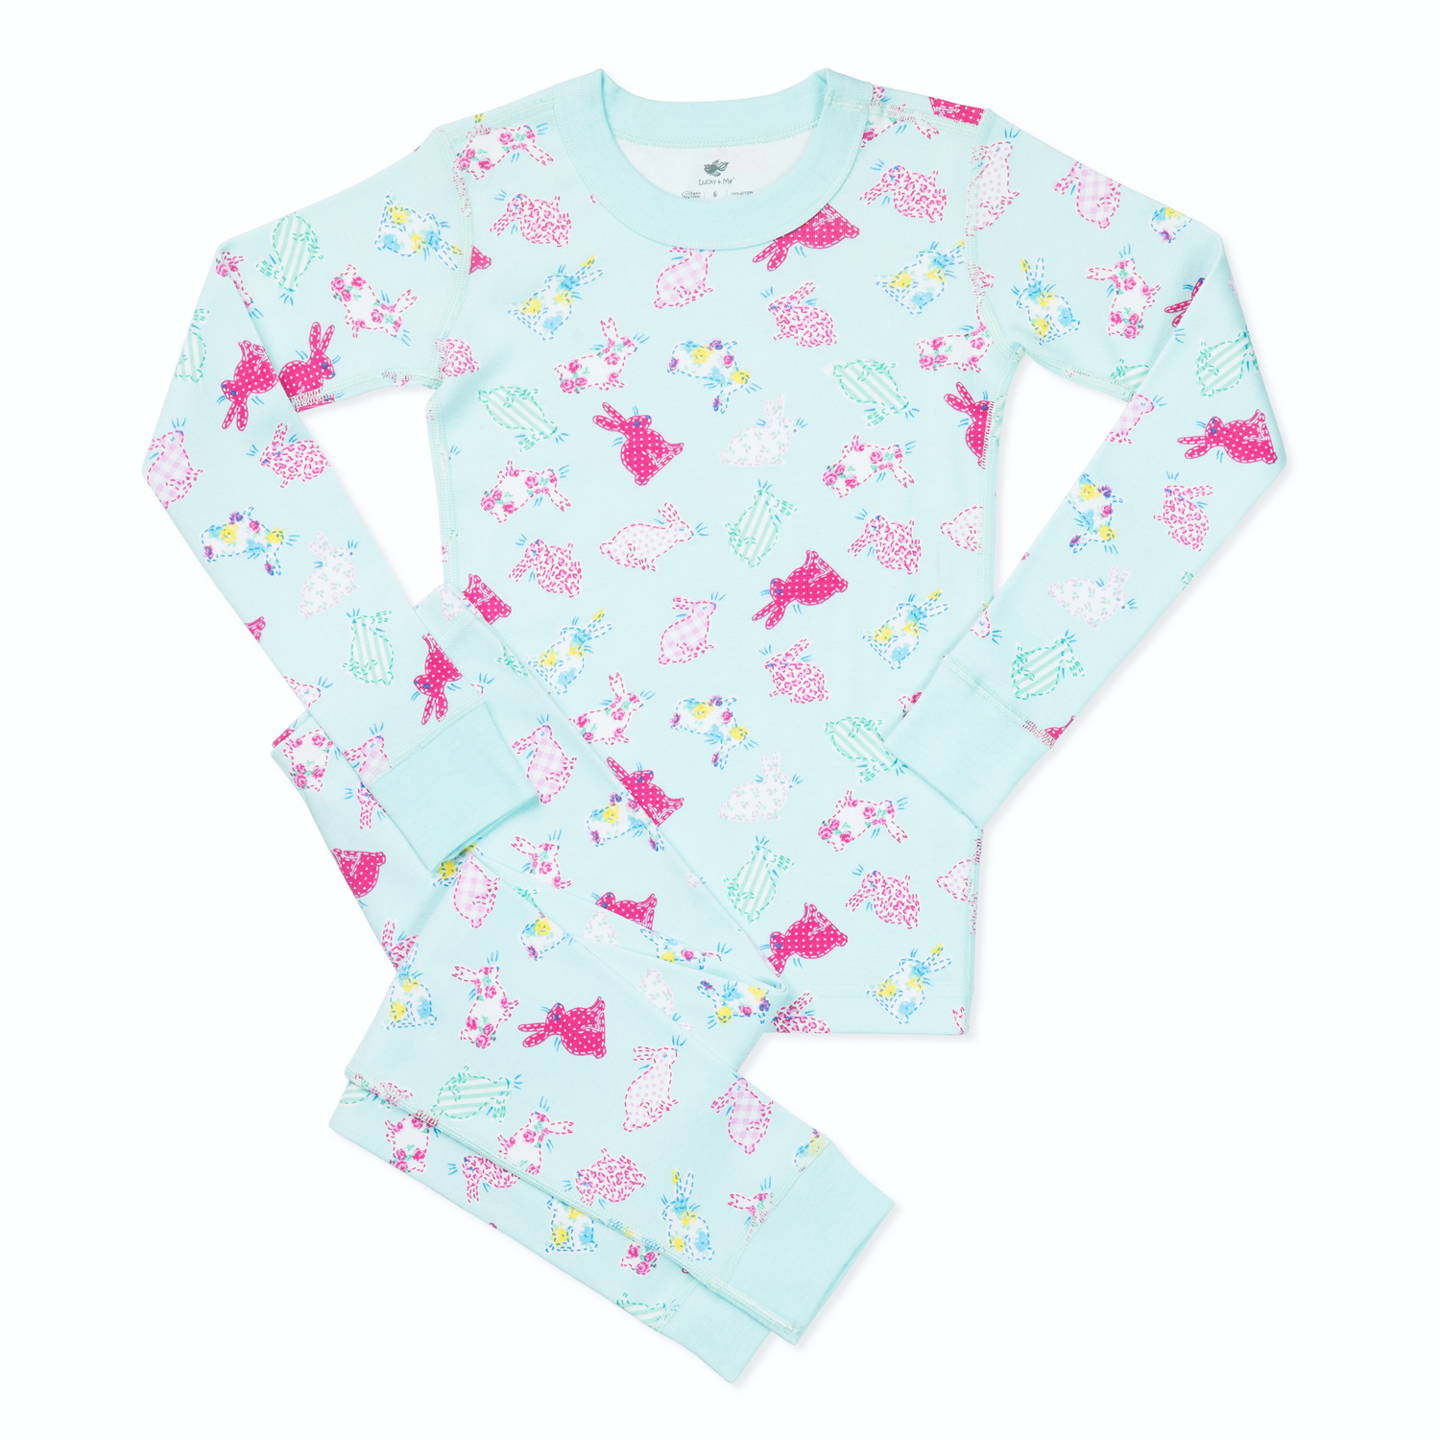 JoJo Kids Organic Cotton Pajamas